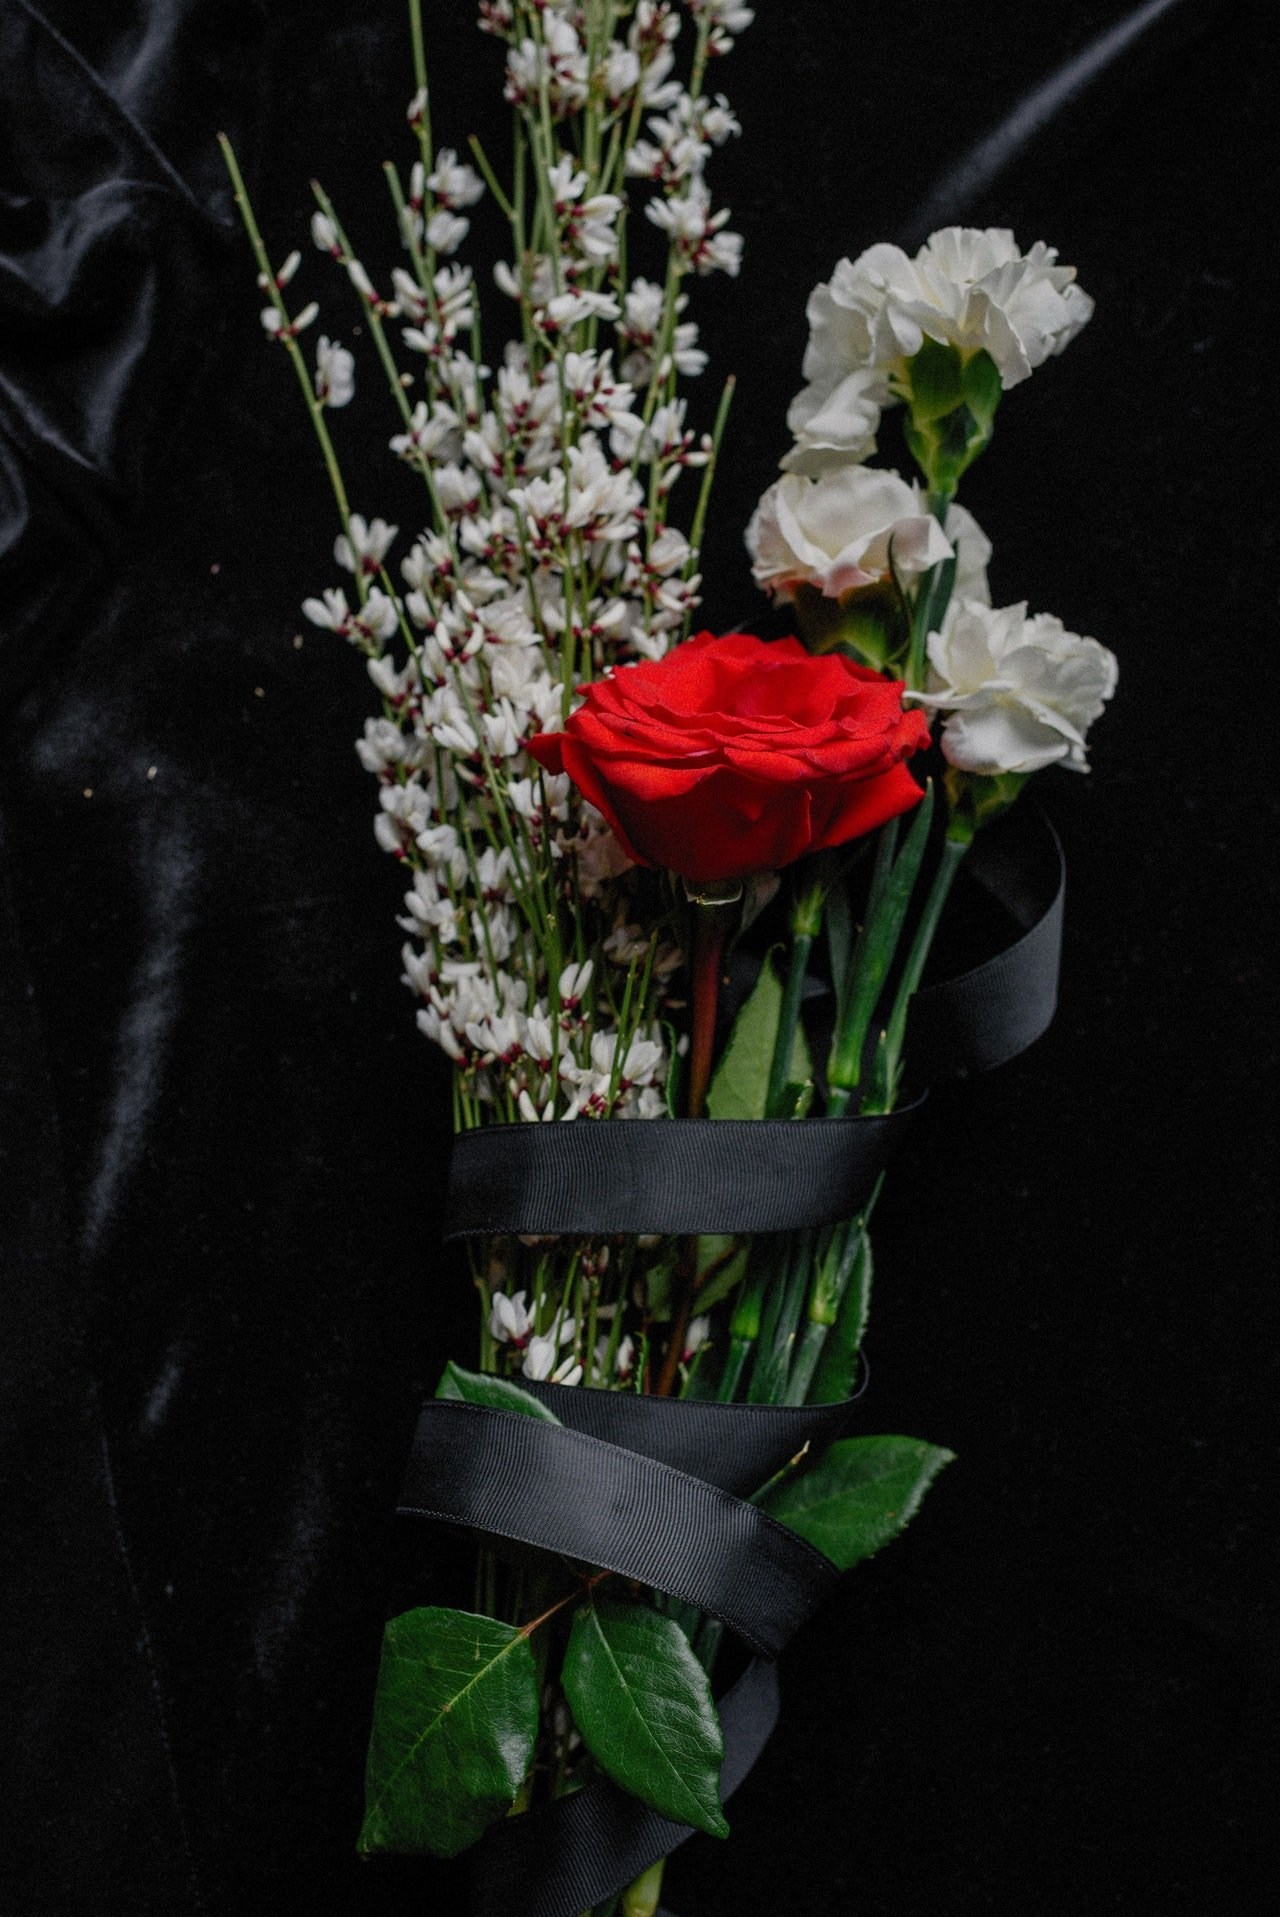 Bouquet wrapped in black paper   Source: Pexels